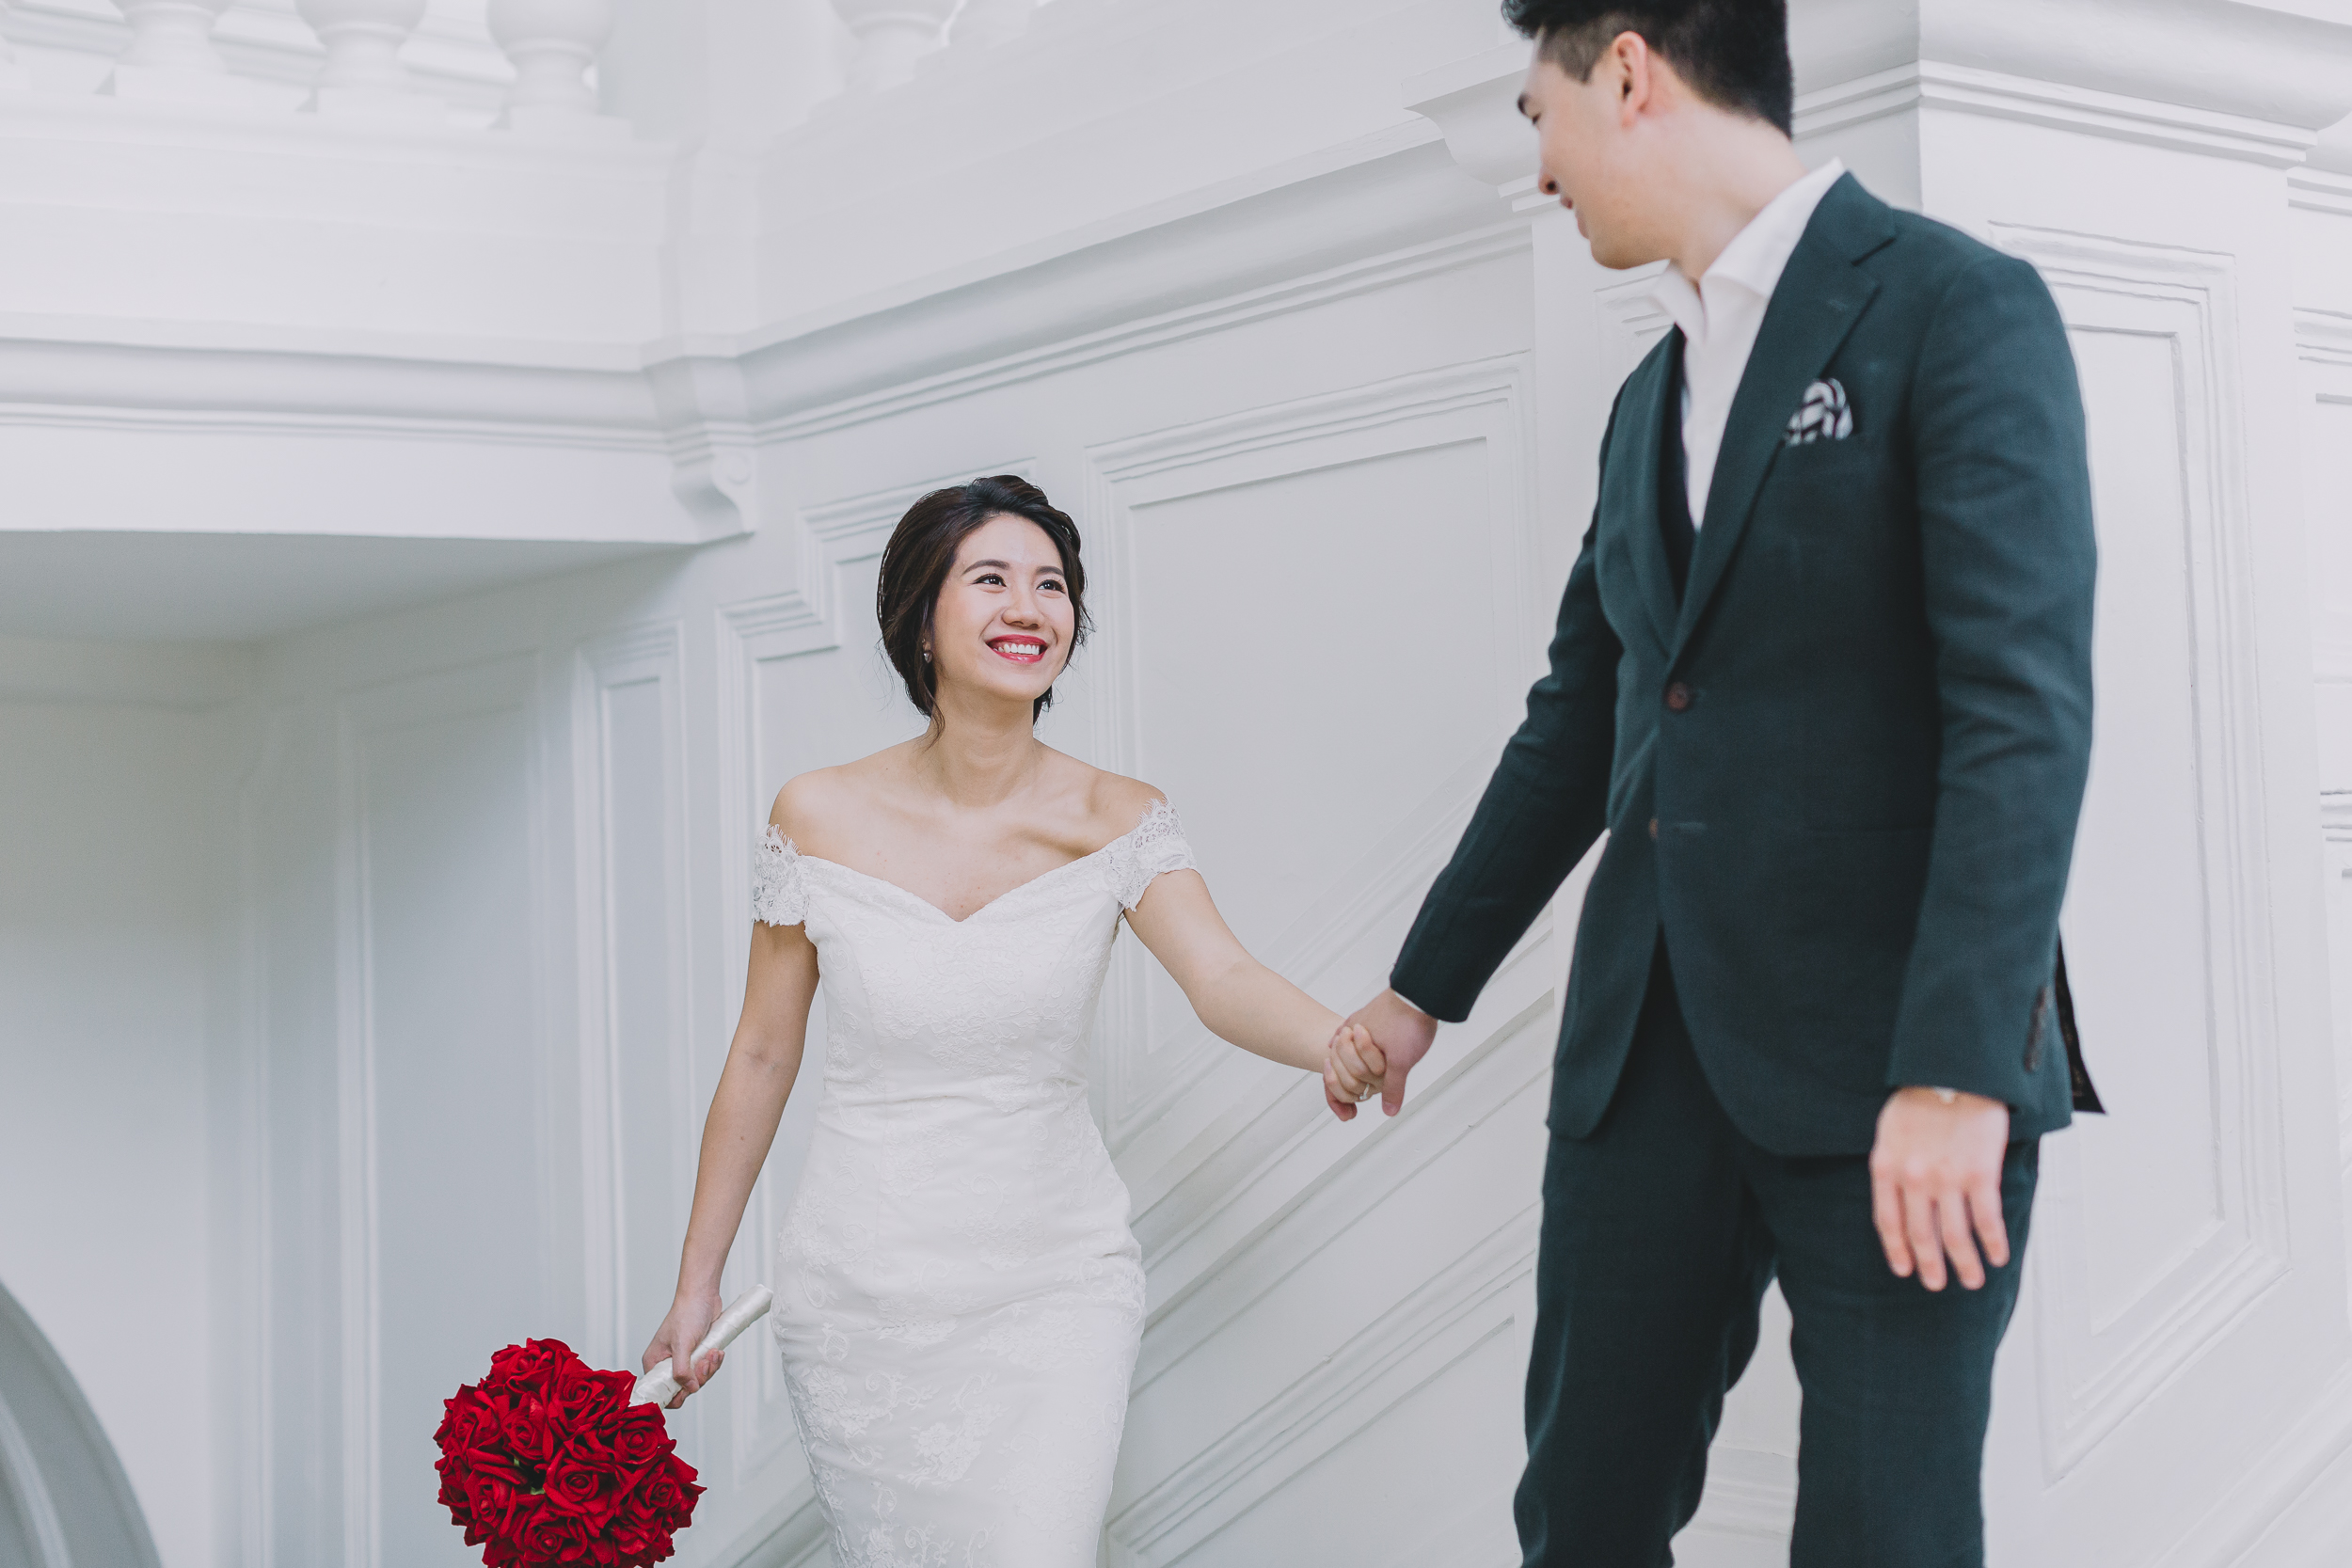 Singapore+Pre+Wedding+Photographer+Jeremiah+Christina-0004.jpg